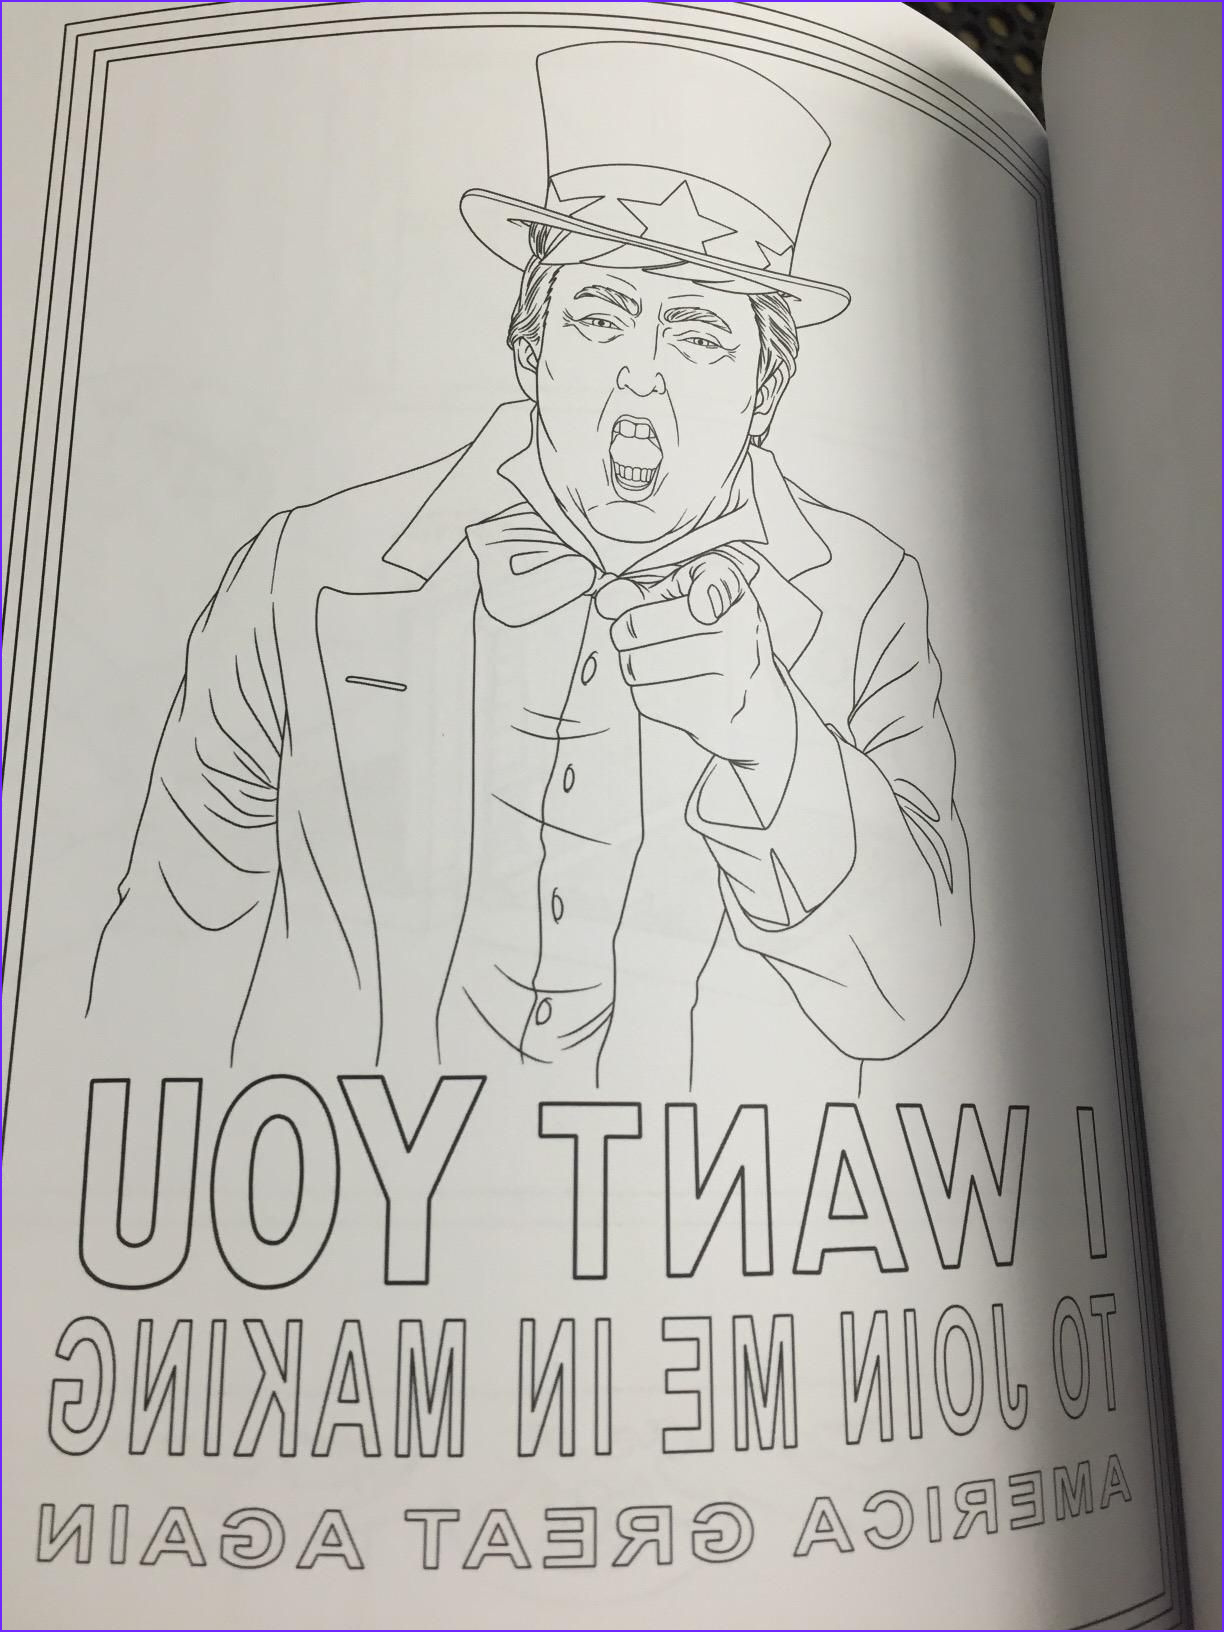 Trump Coloring Book New Collection Amazon Prime now the Trump Coloring Book